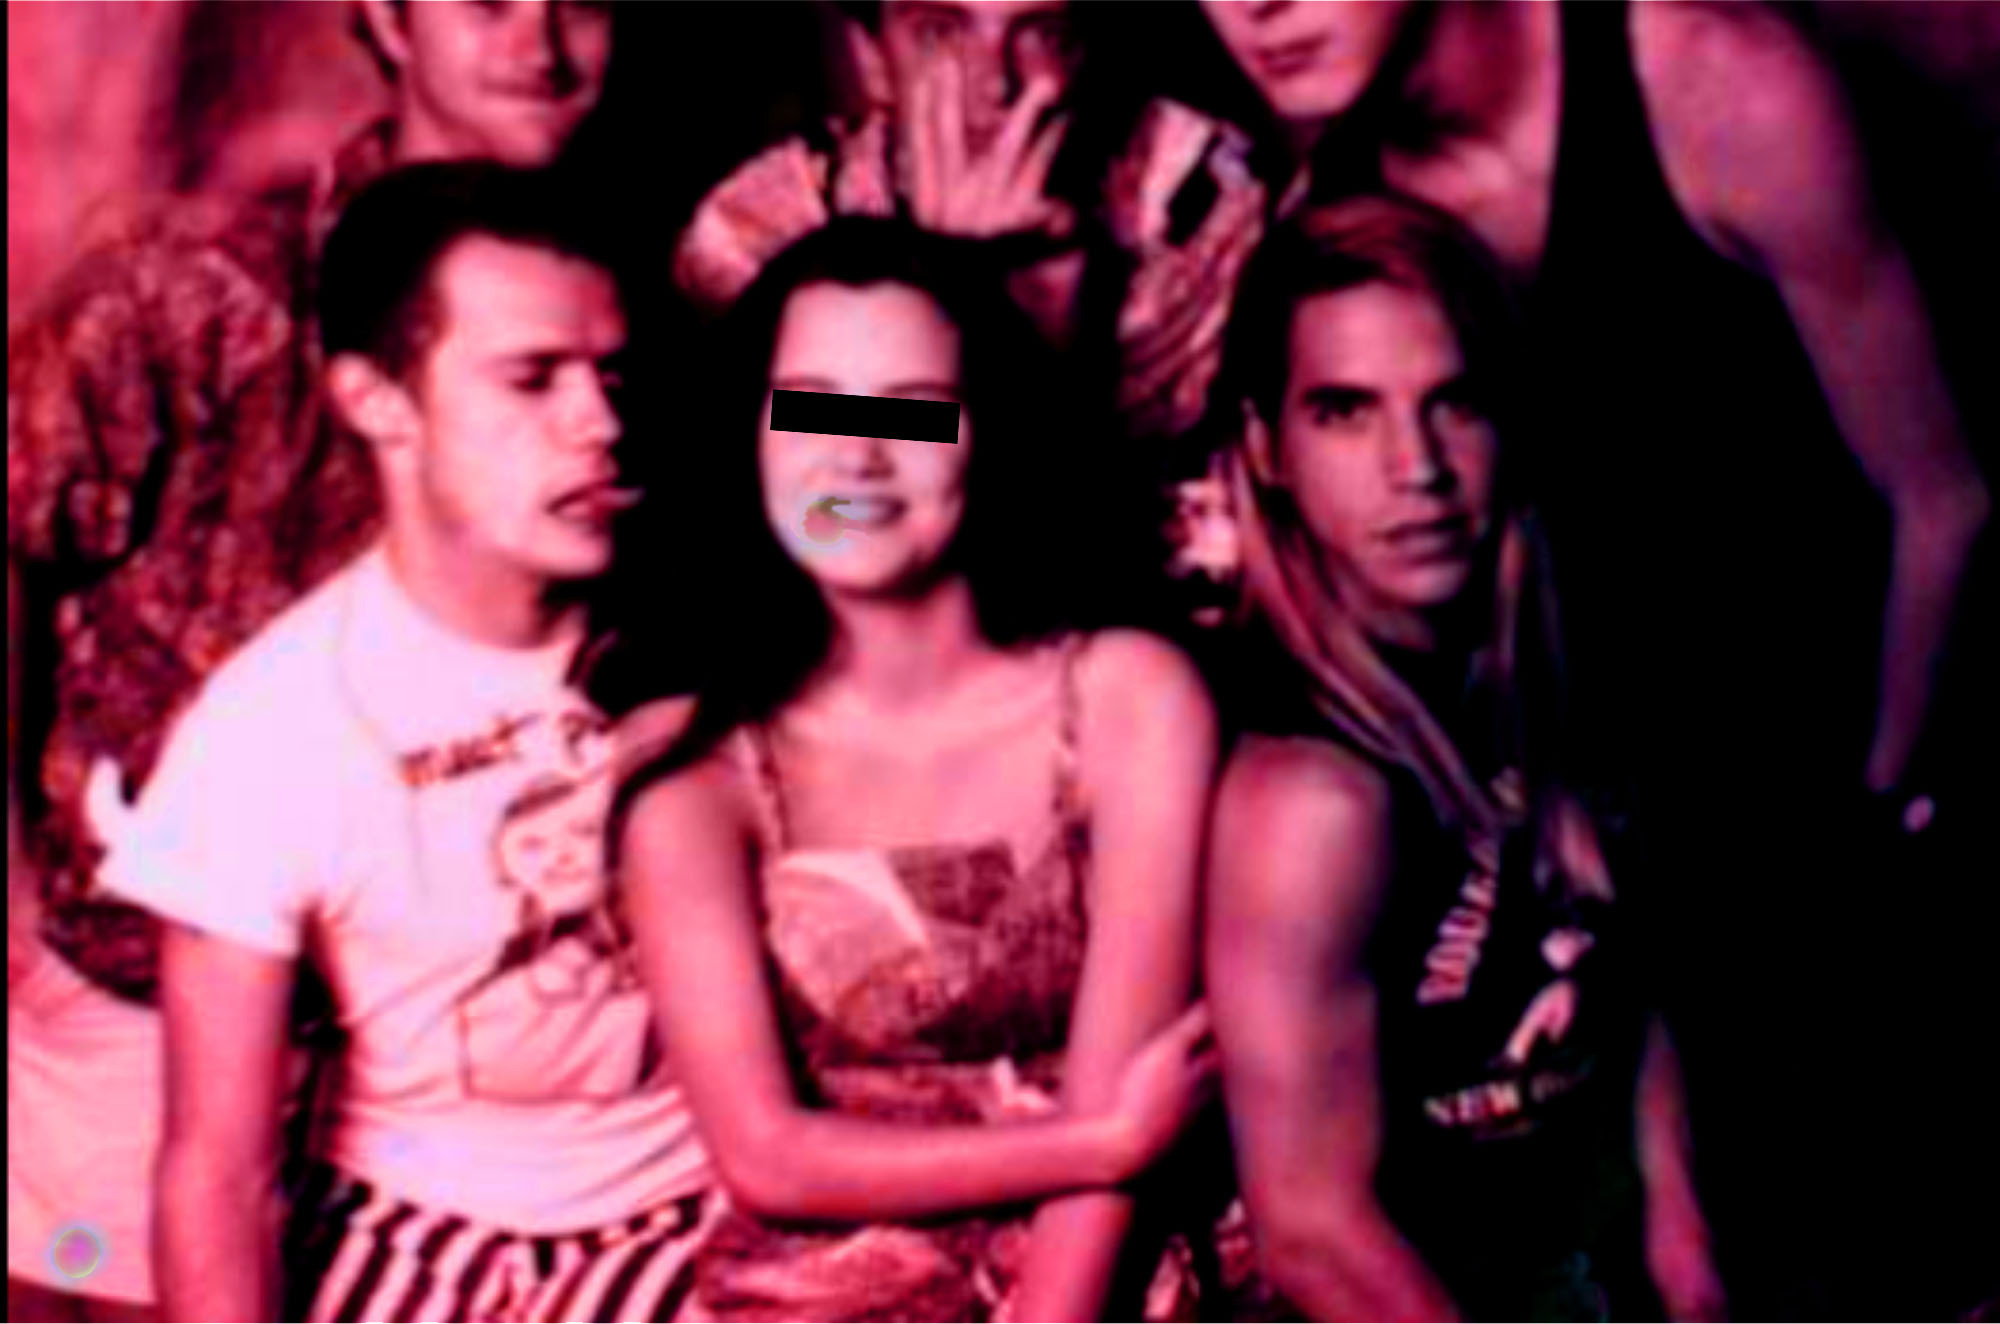 No Chili: Examining the Forgotten Assaults of RHCP and the Industry That Allowed It